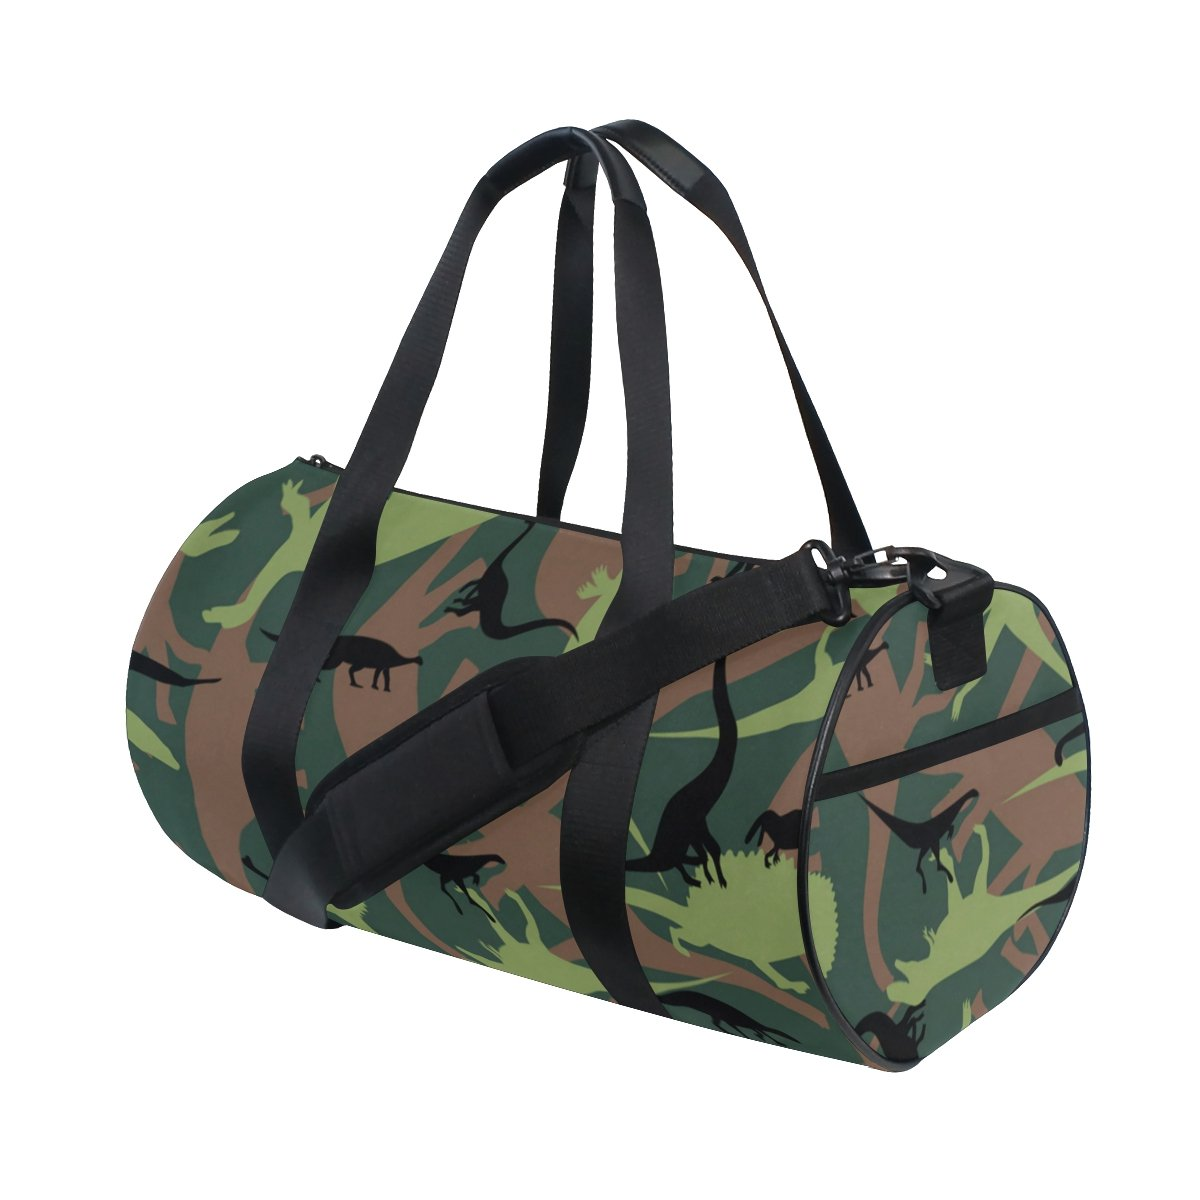 Naanle Dinosaur Camouflage Pattern Army Military Texture Camo Gym bag Sports Travel Duffle Bags for Men Women Boys Girls Kids